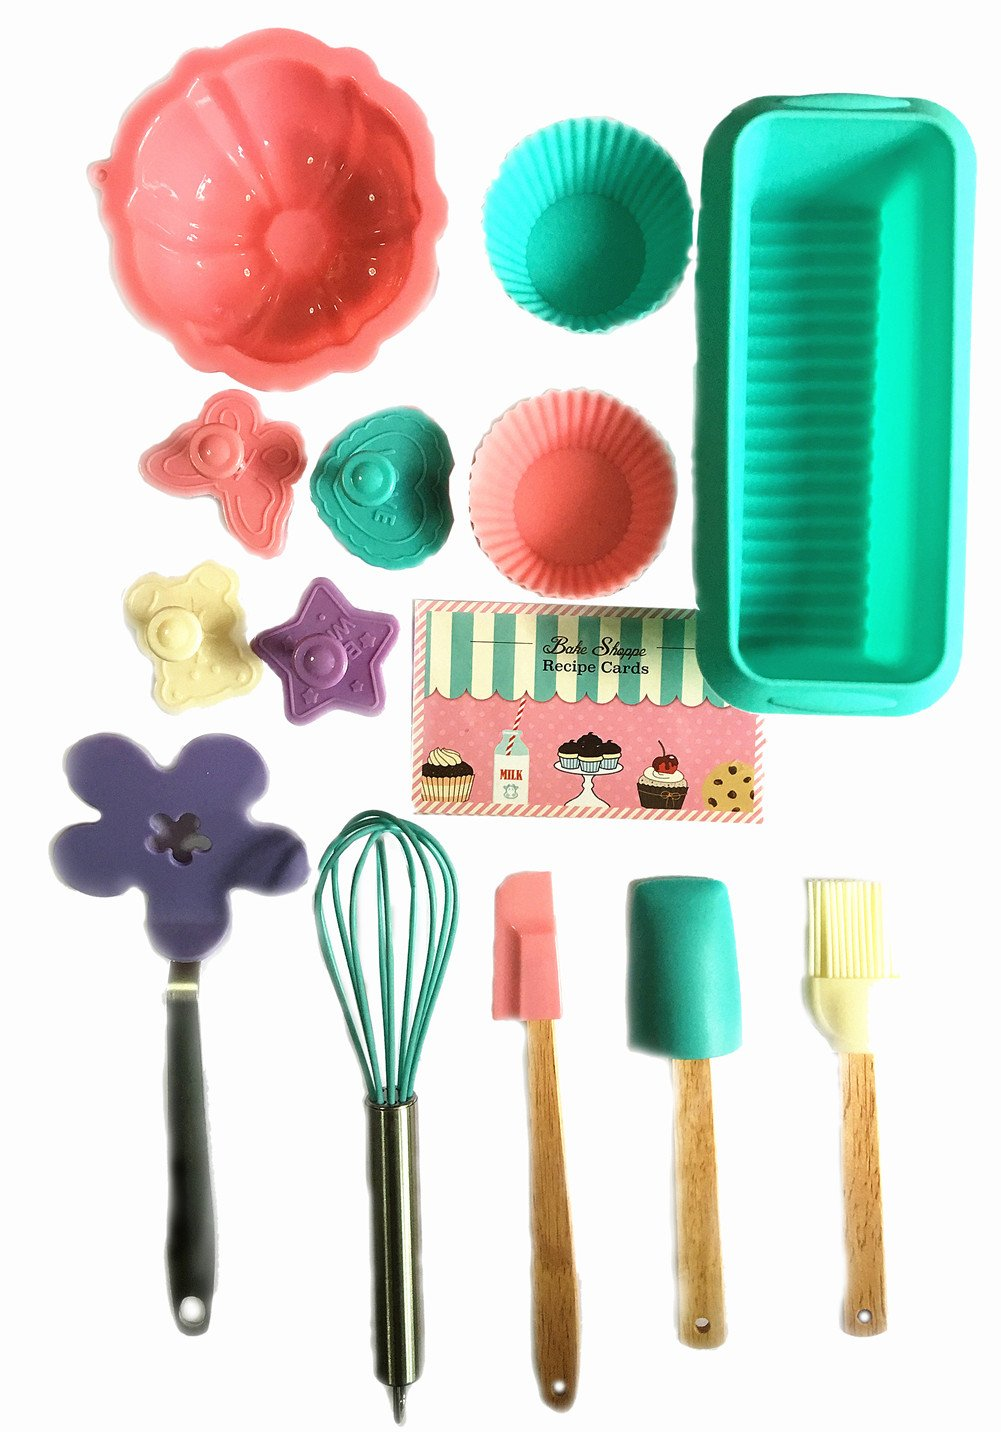 Bake Shoppe 25-piece Deluxe Baking Set for Kids Goodview 60046